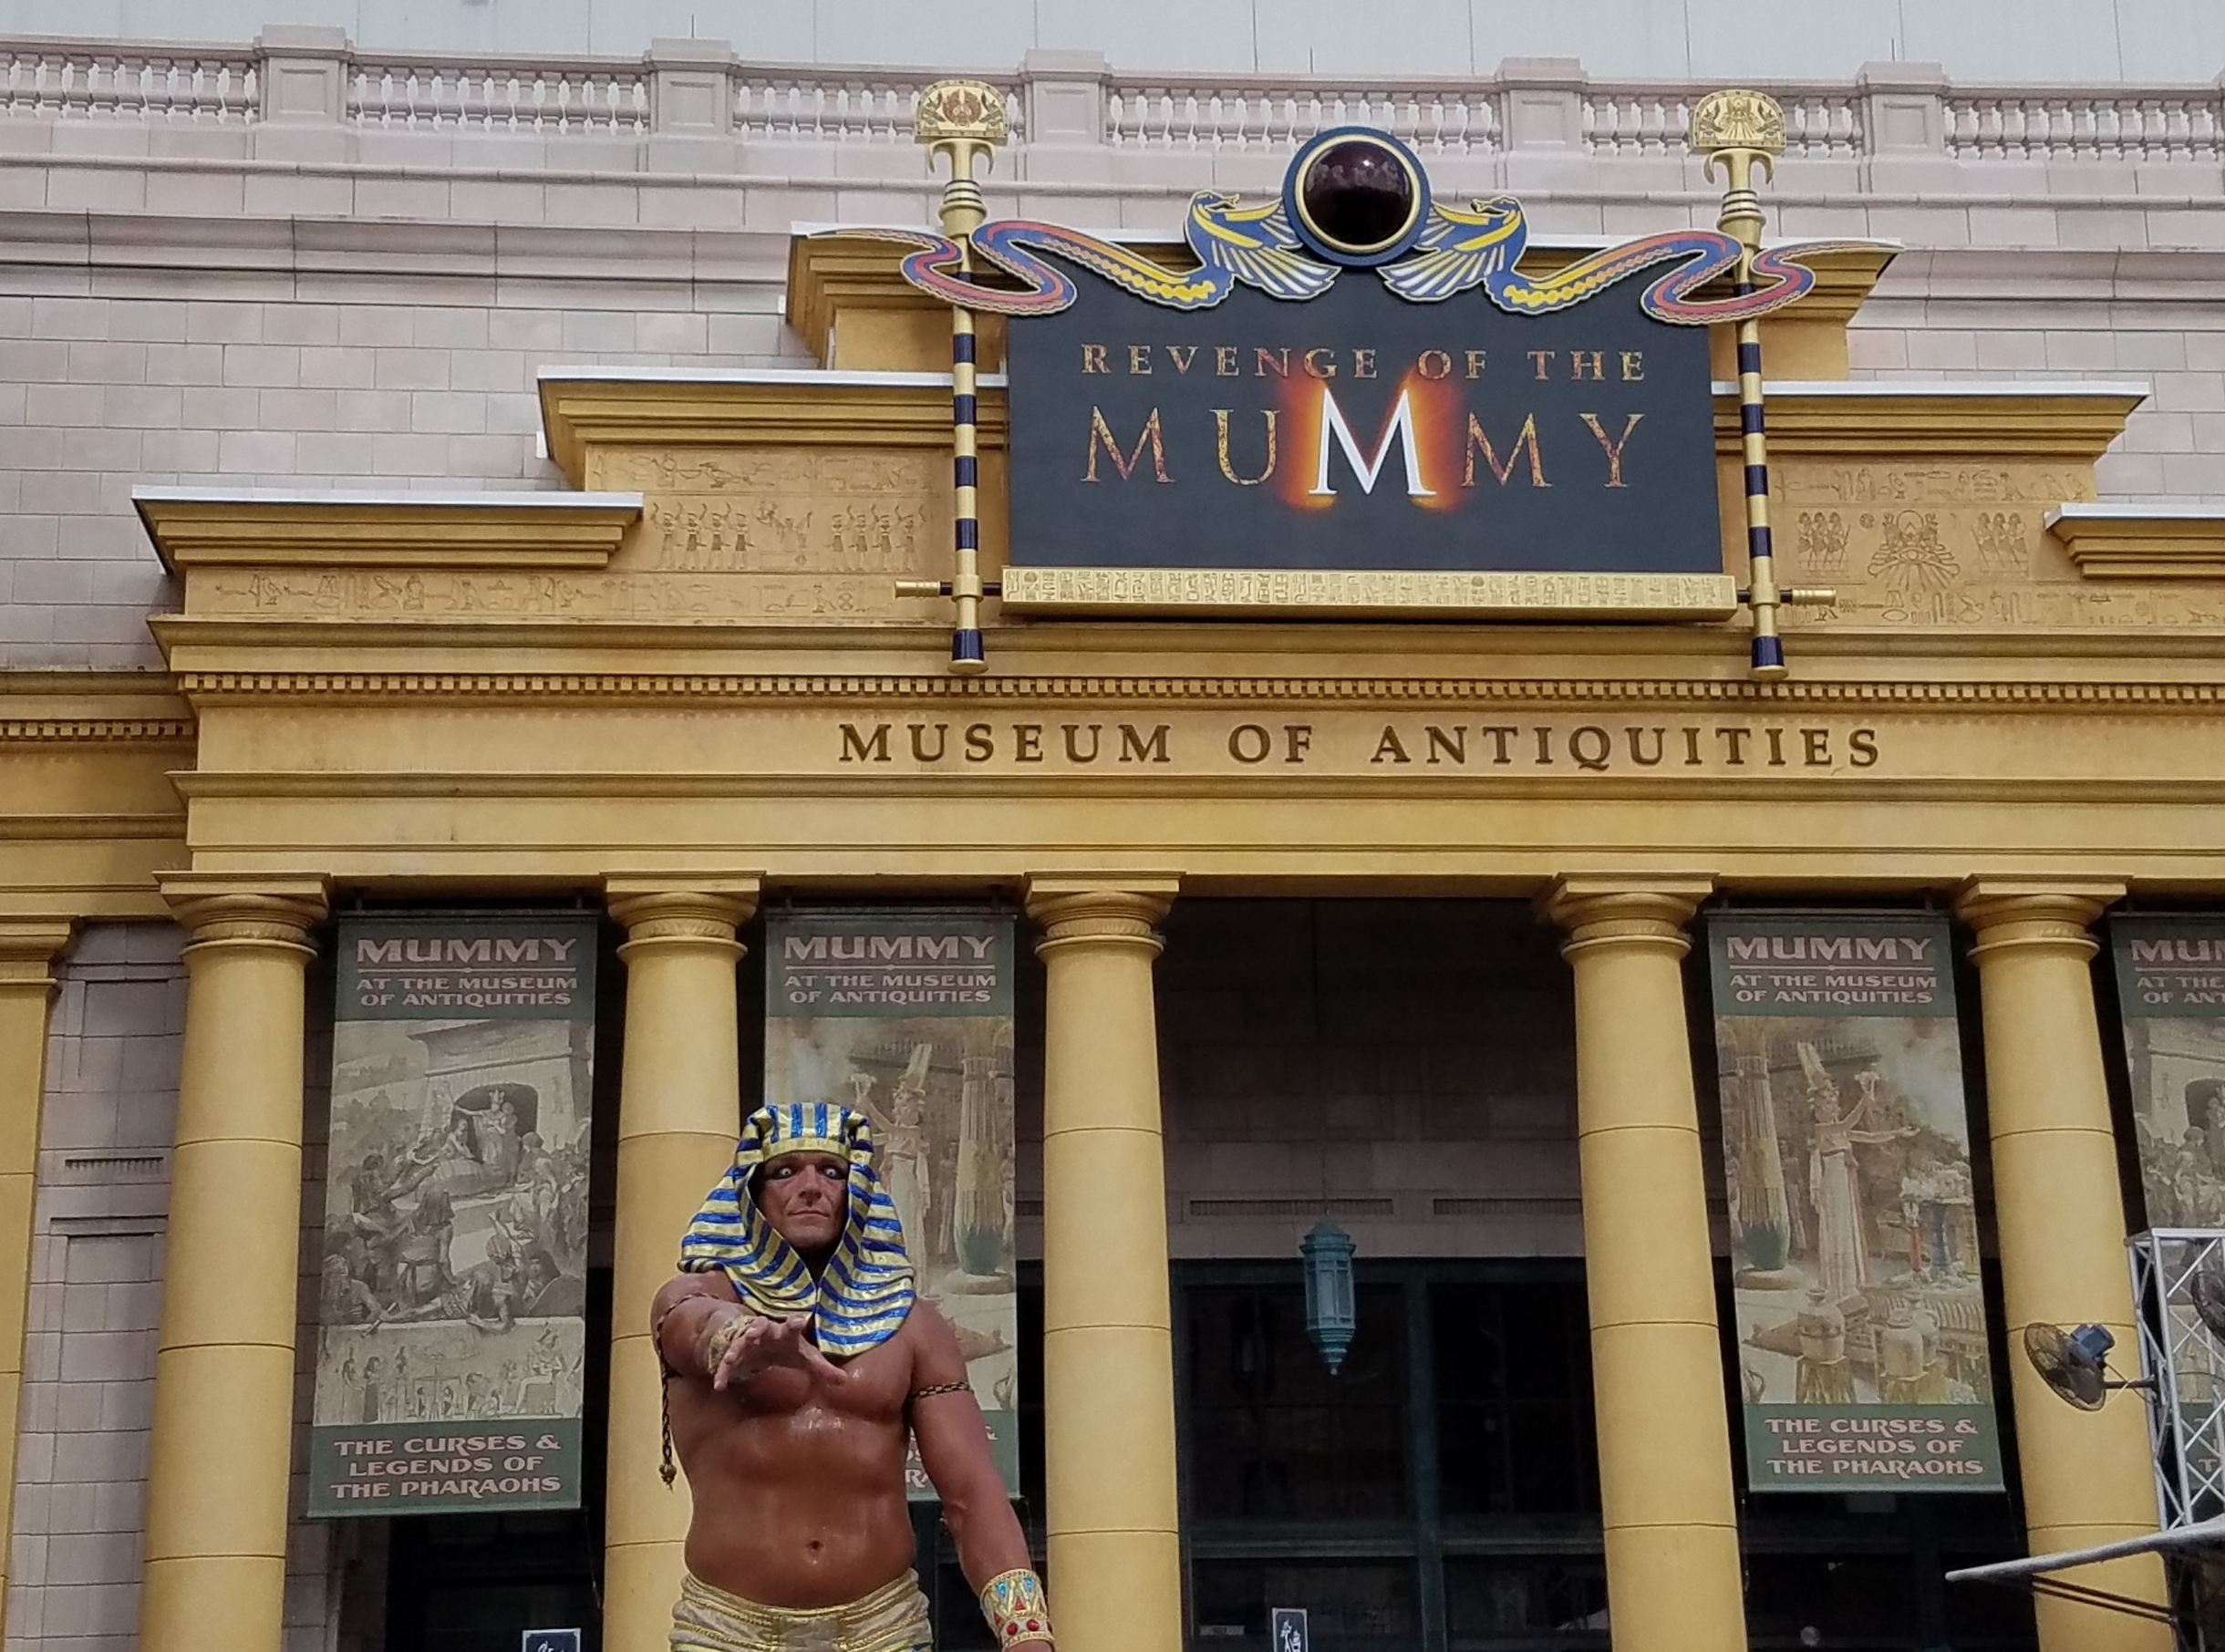 Revenge of the Mummy ride facade and character meet and greet.